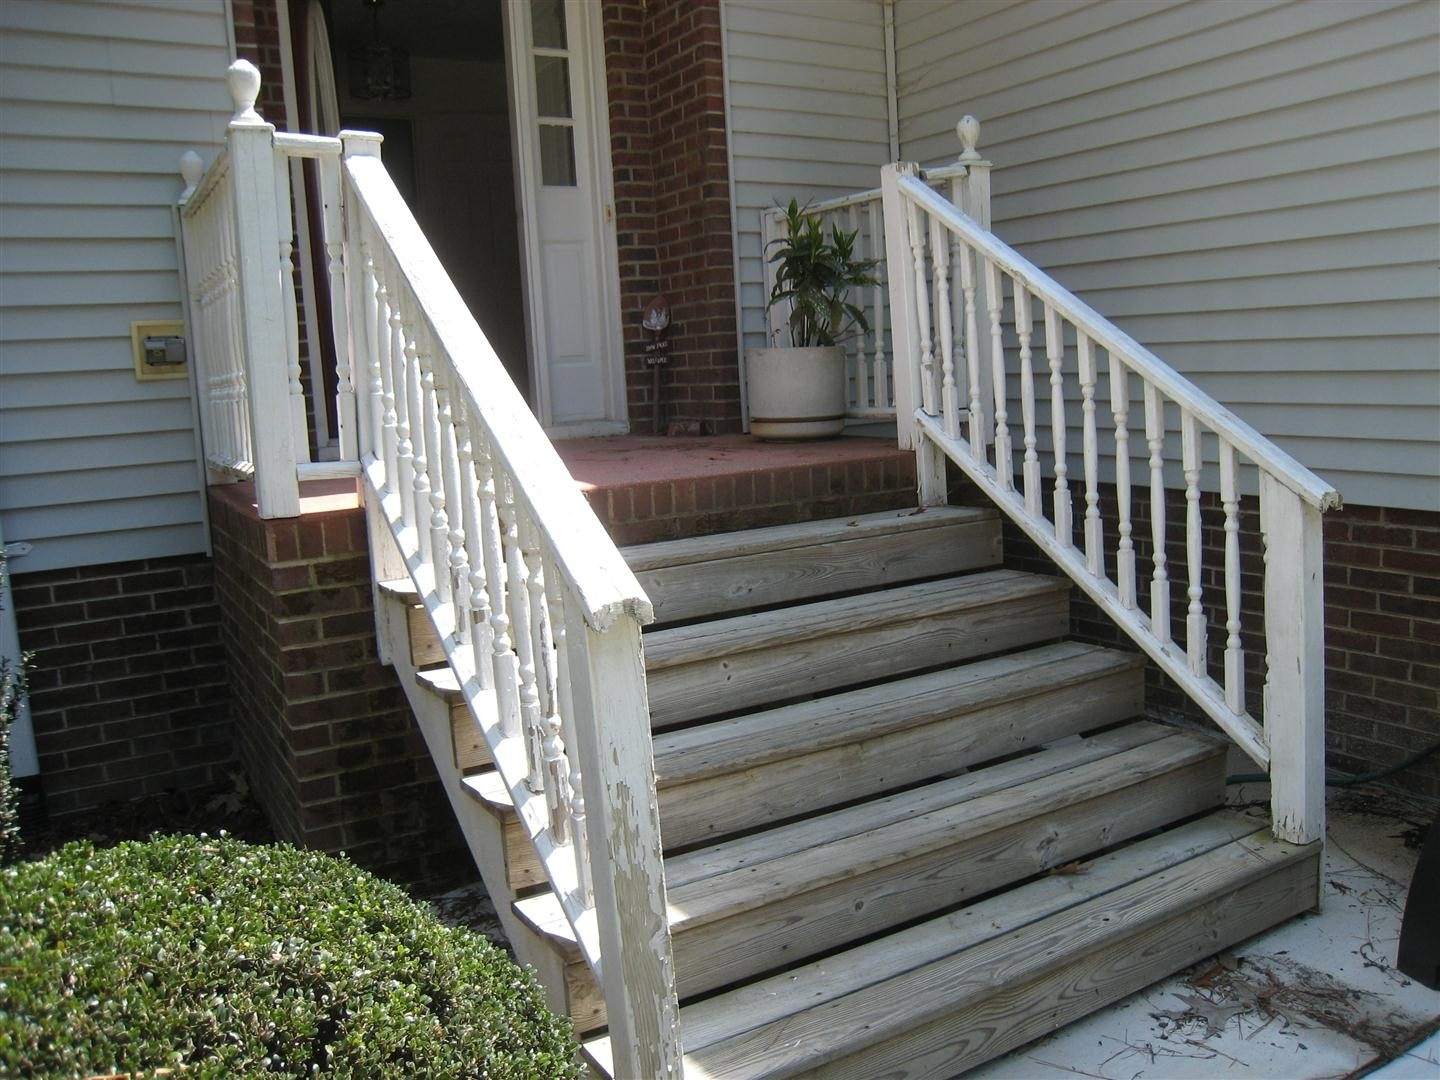 Wooden Handrails For Porch Steps — Randolph Indoor And Outdoor Design | Handrails For Outdoor Steps | Plastic | Galvanized Steel | Solid Wood | Rail | Simple